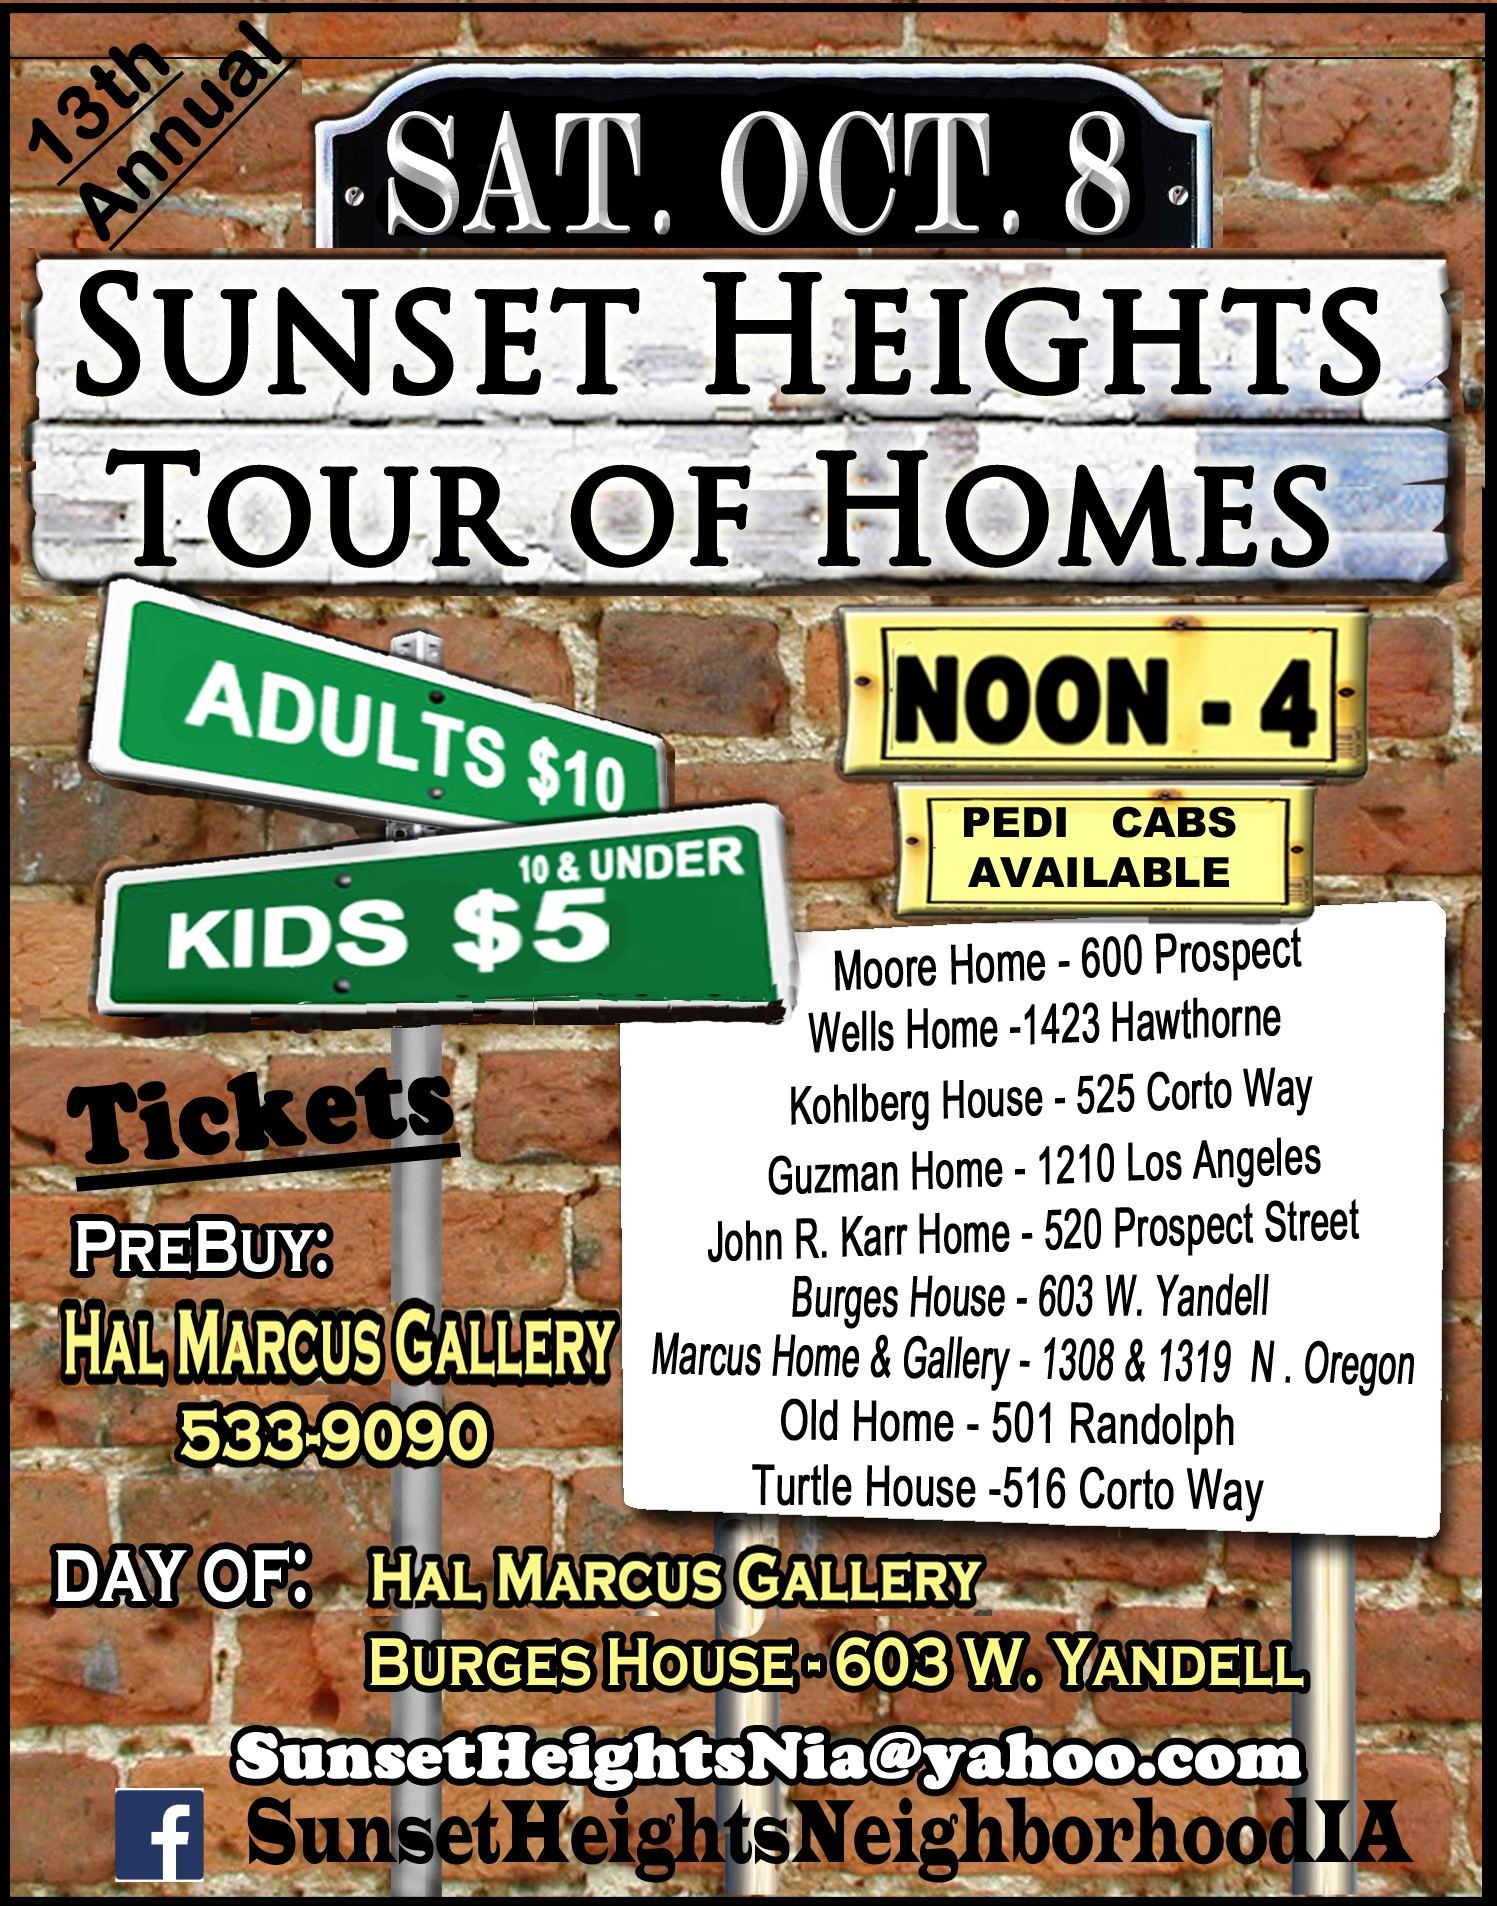 2016 Sunset Heights Tour of Homes